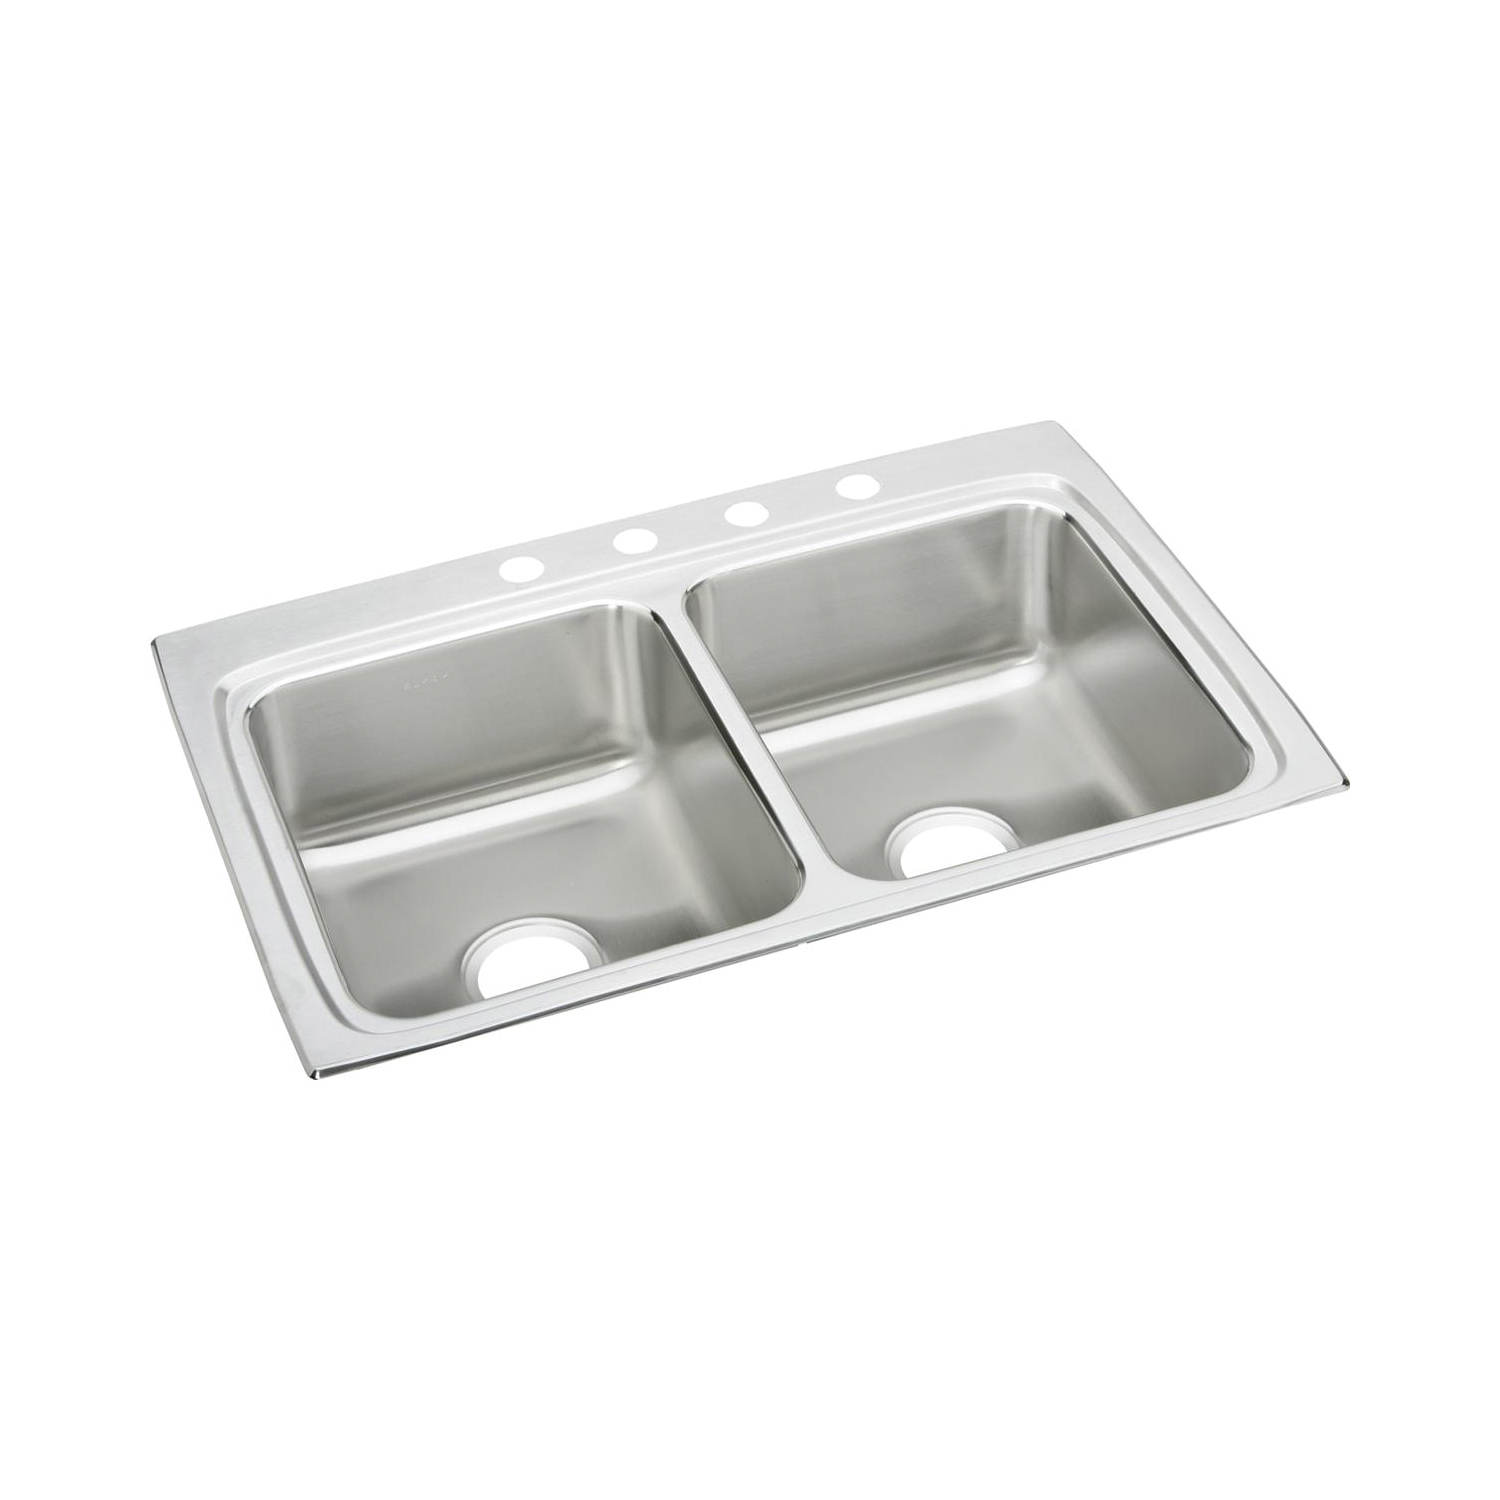 Elkay® LR33223 Gourmet Kitchen Sink, Rectangular, 3 Faucet Holes, 33 in W x 22 in D x 8-1/8 in H, Top Mount, Stainless Steel, Lustertone, Domestic